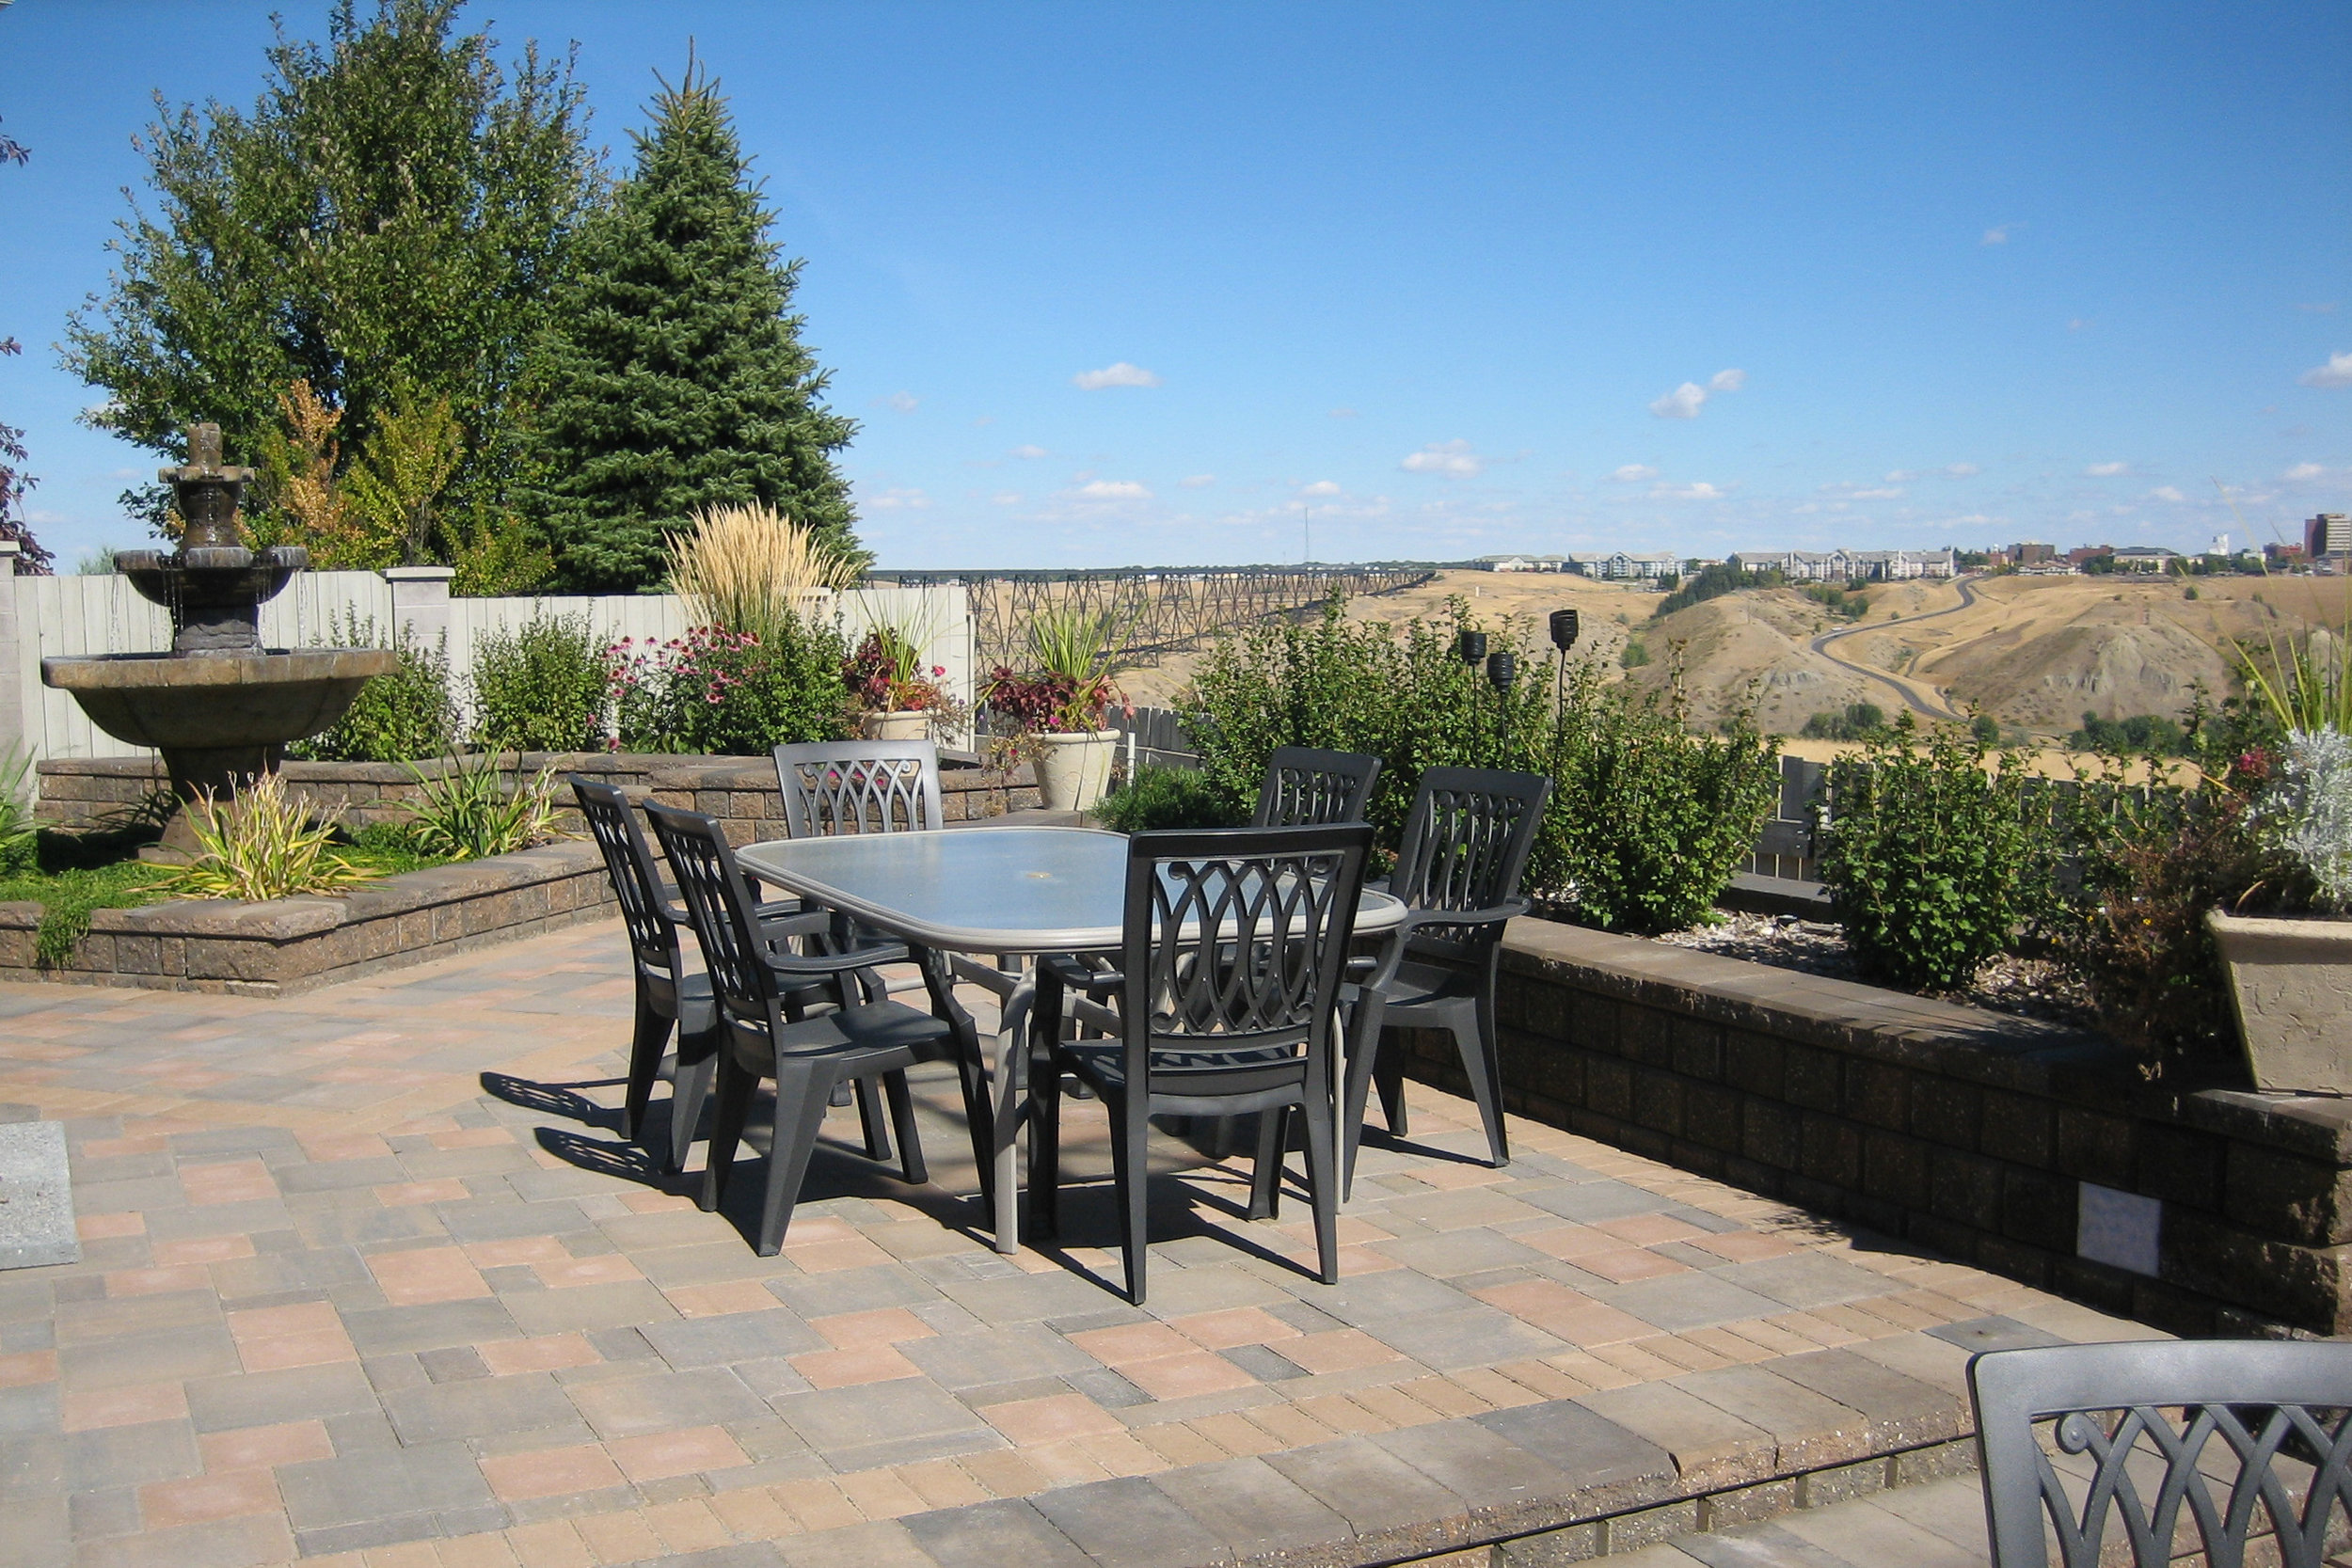 A paving stone patio can create your own personal oasis.